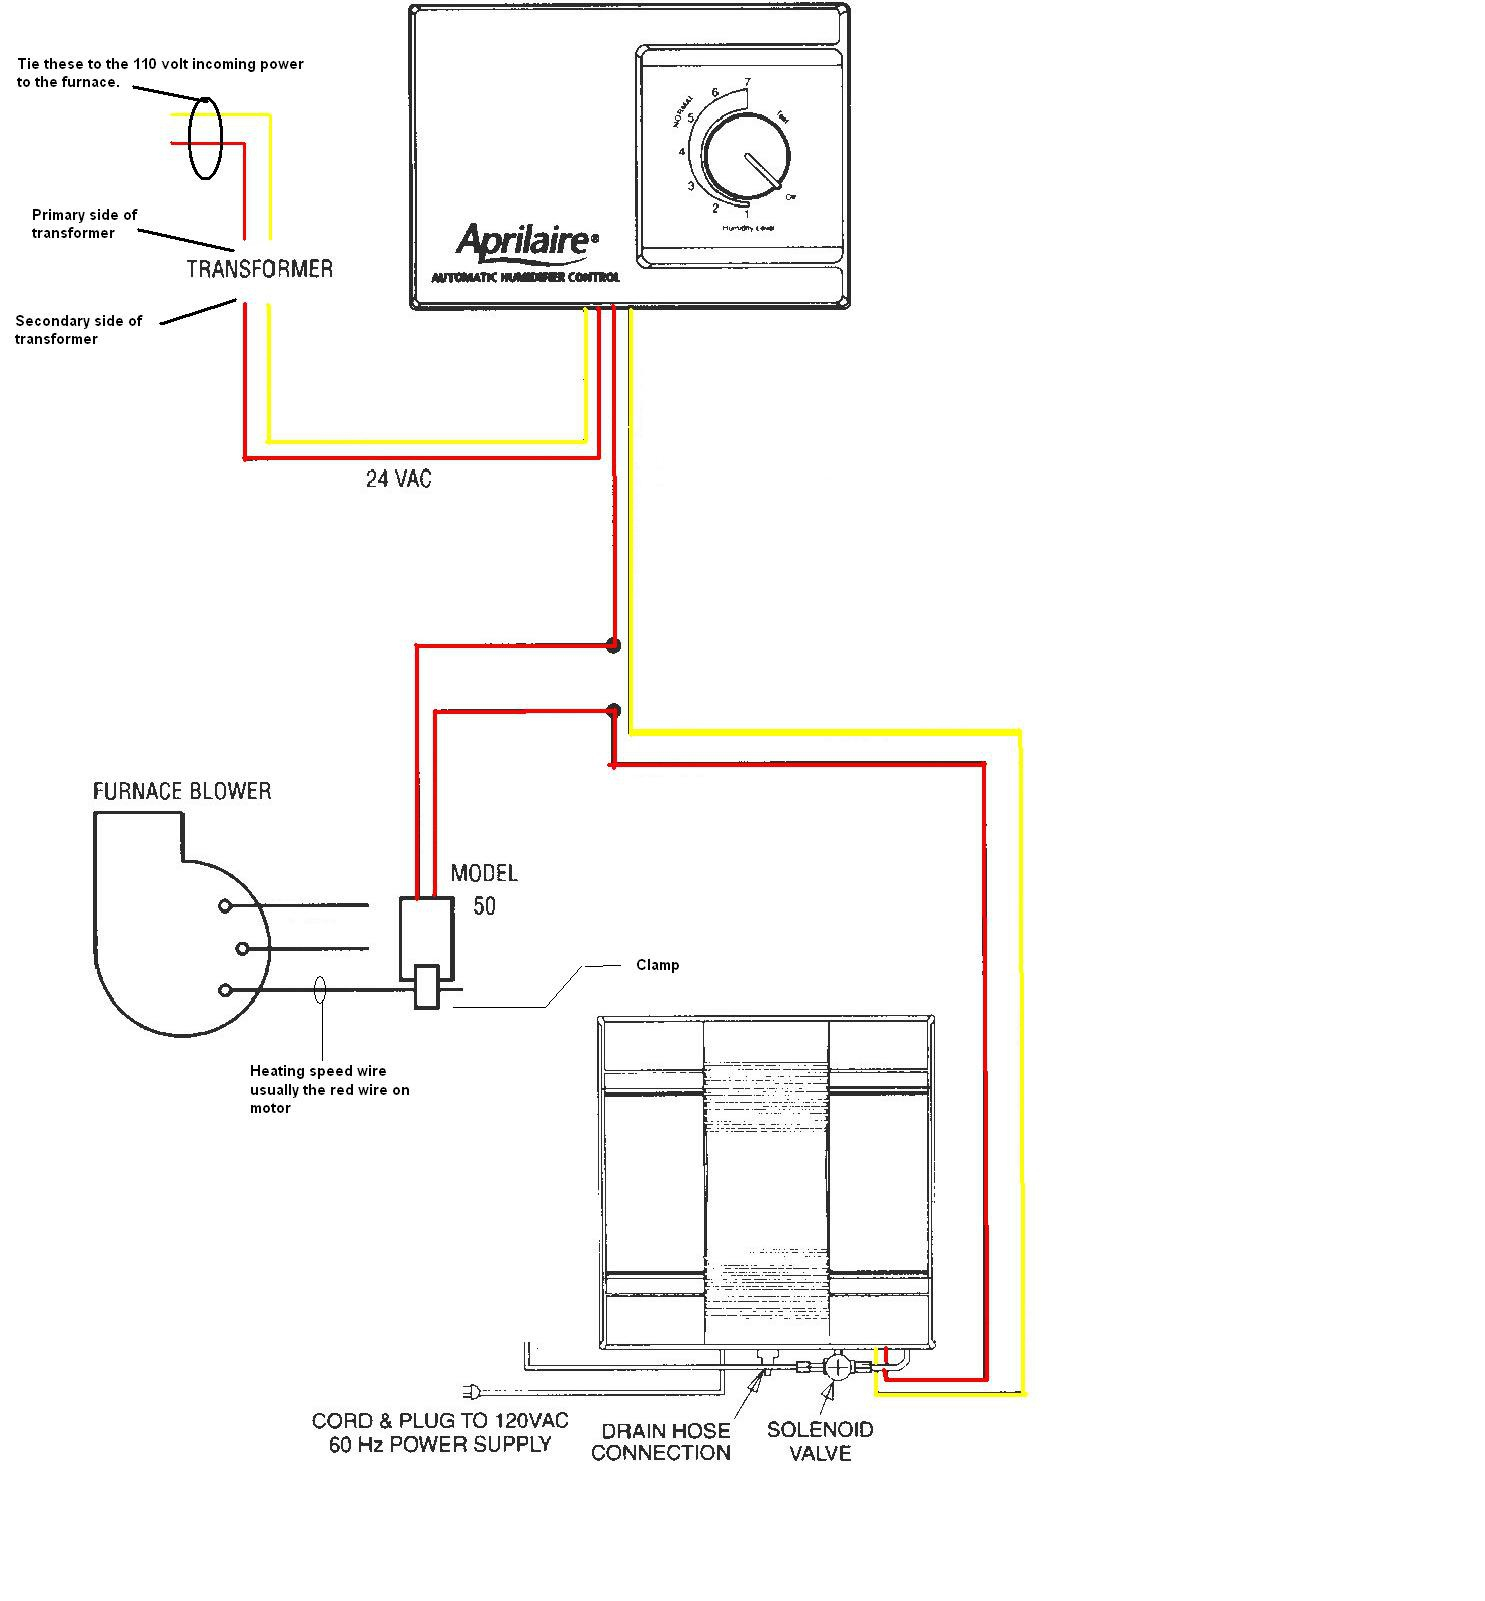 aprilaire humidifier wiring diagram Collection-Unique Aprilaire Humidifier Wiring Diagram 2 6-p